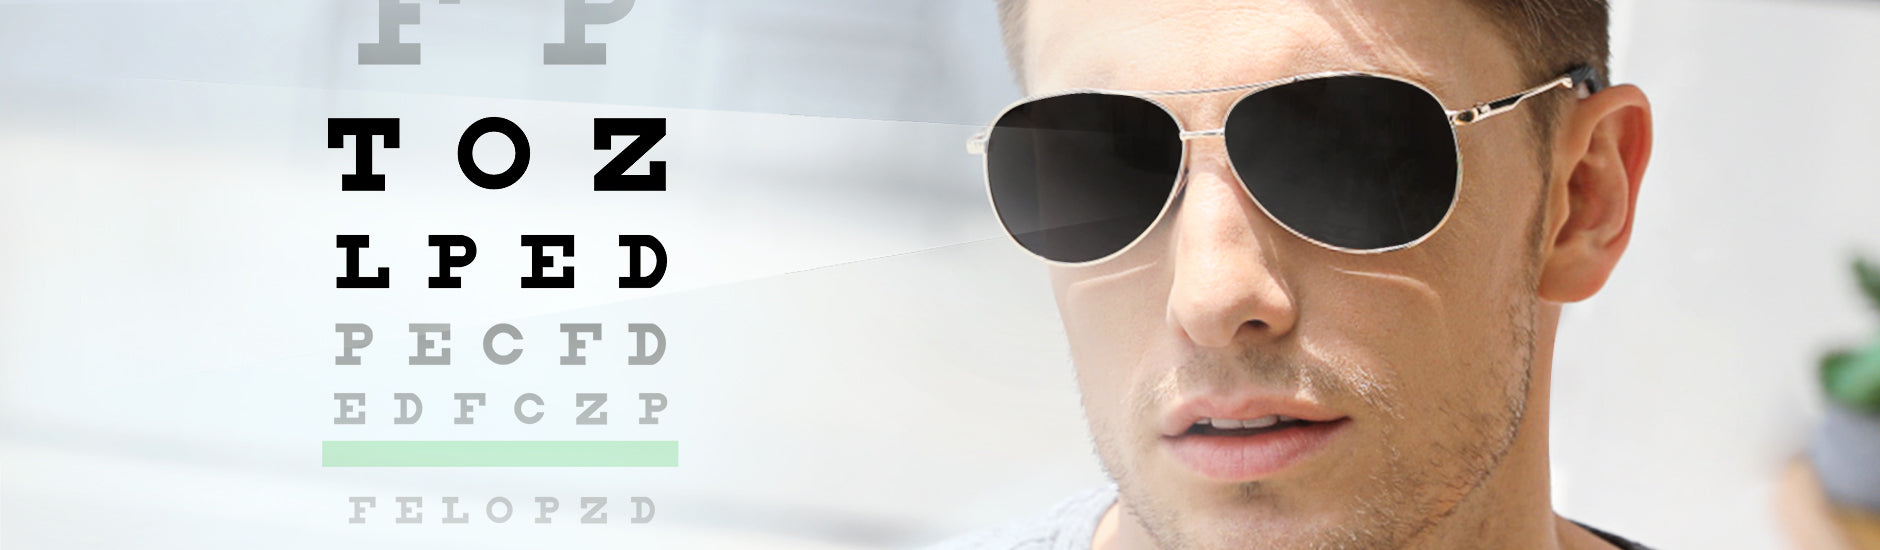 cyxus prescription sunglasses 1489